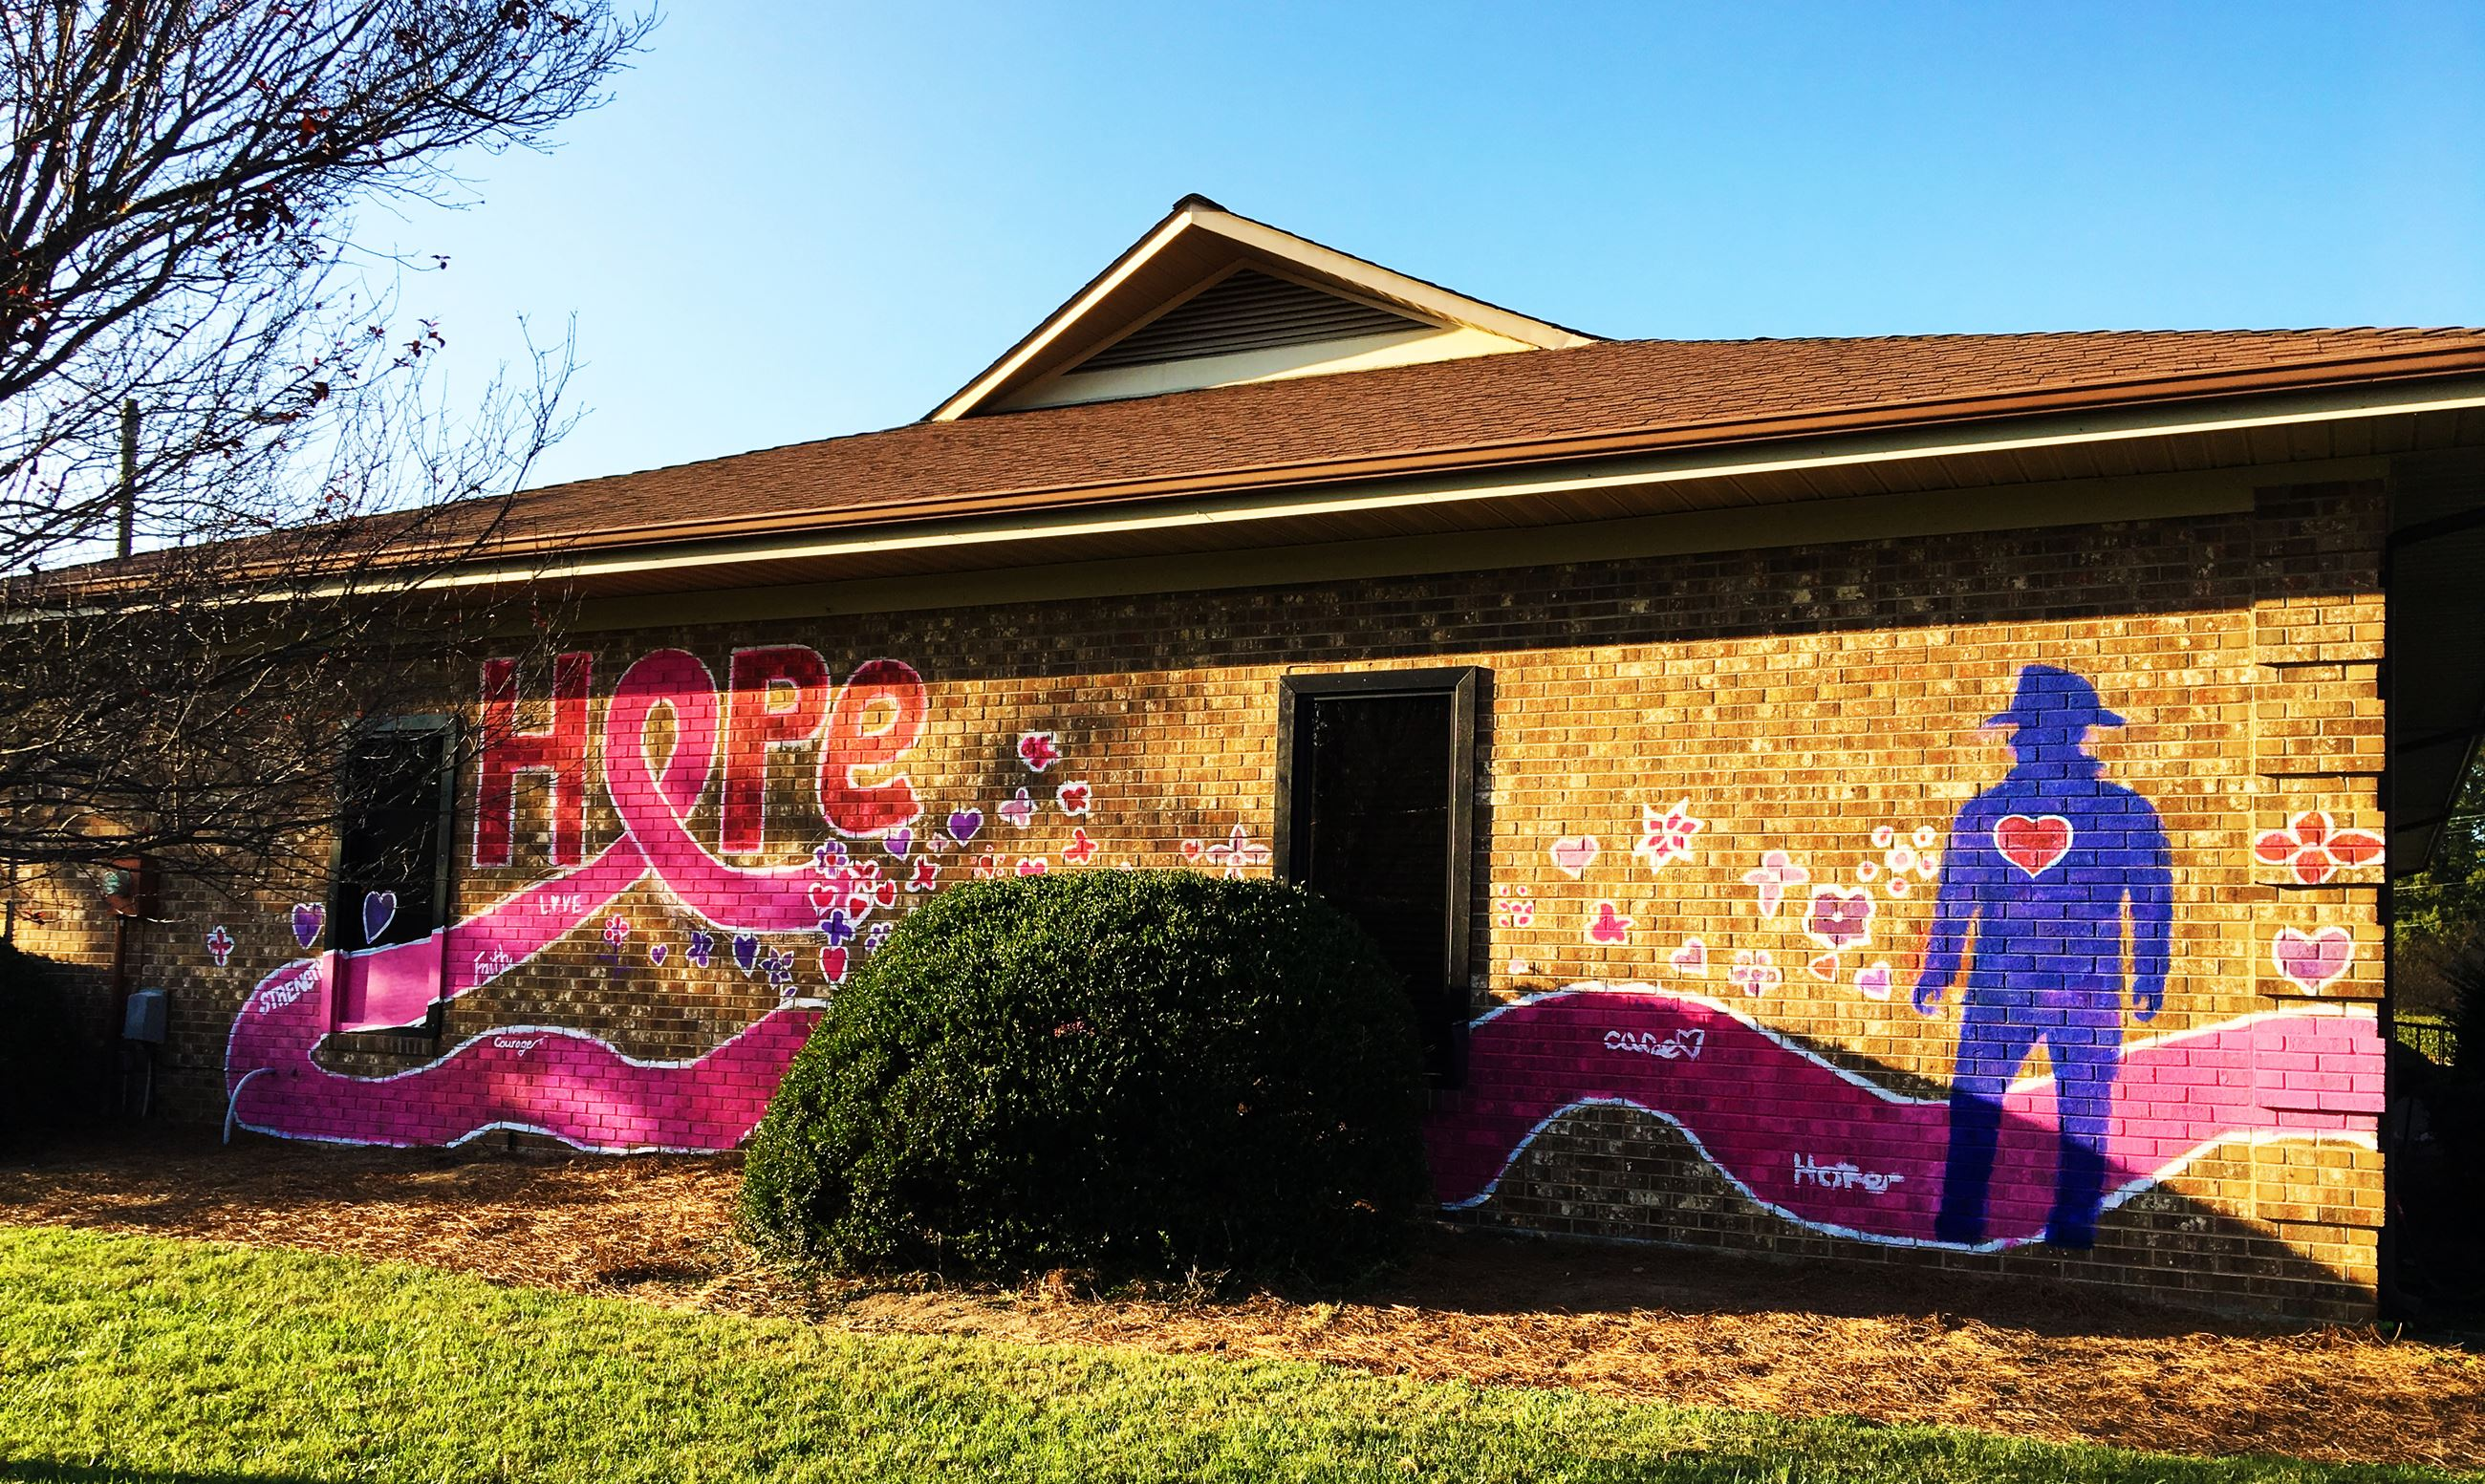 A breast cancer awareness mural